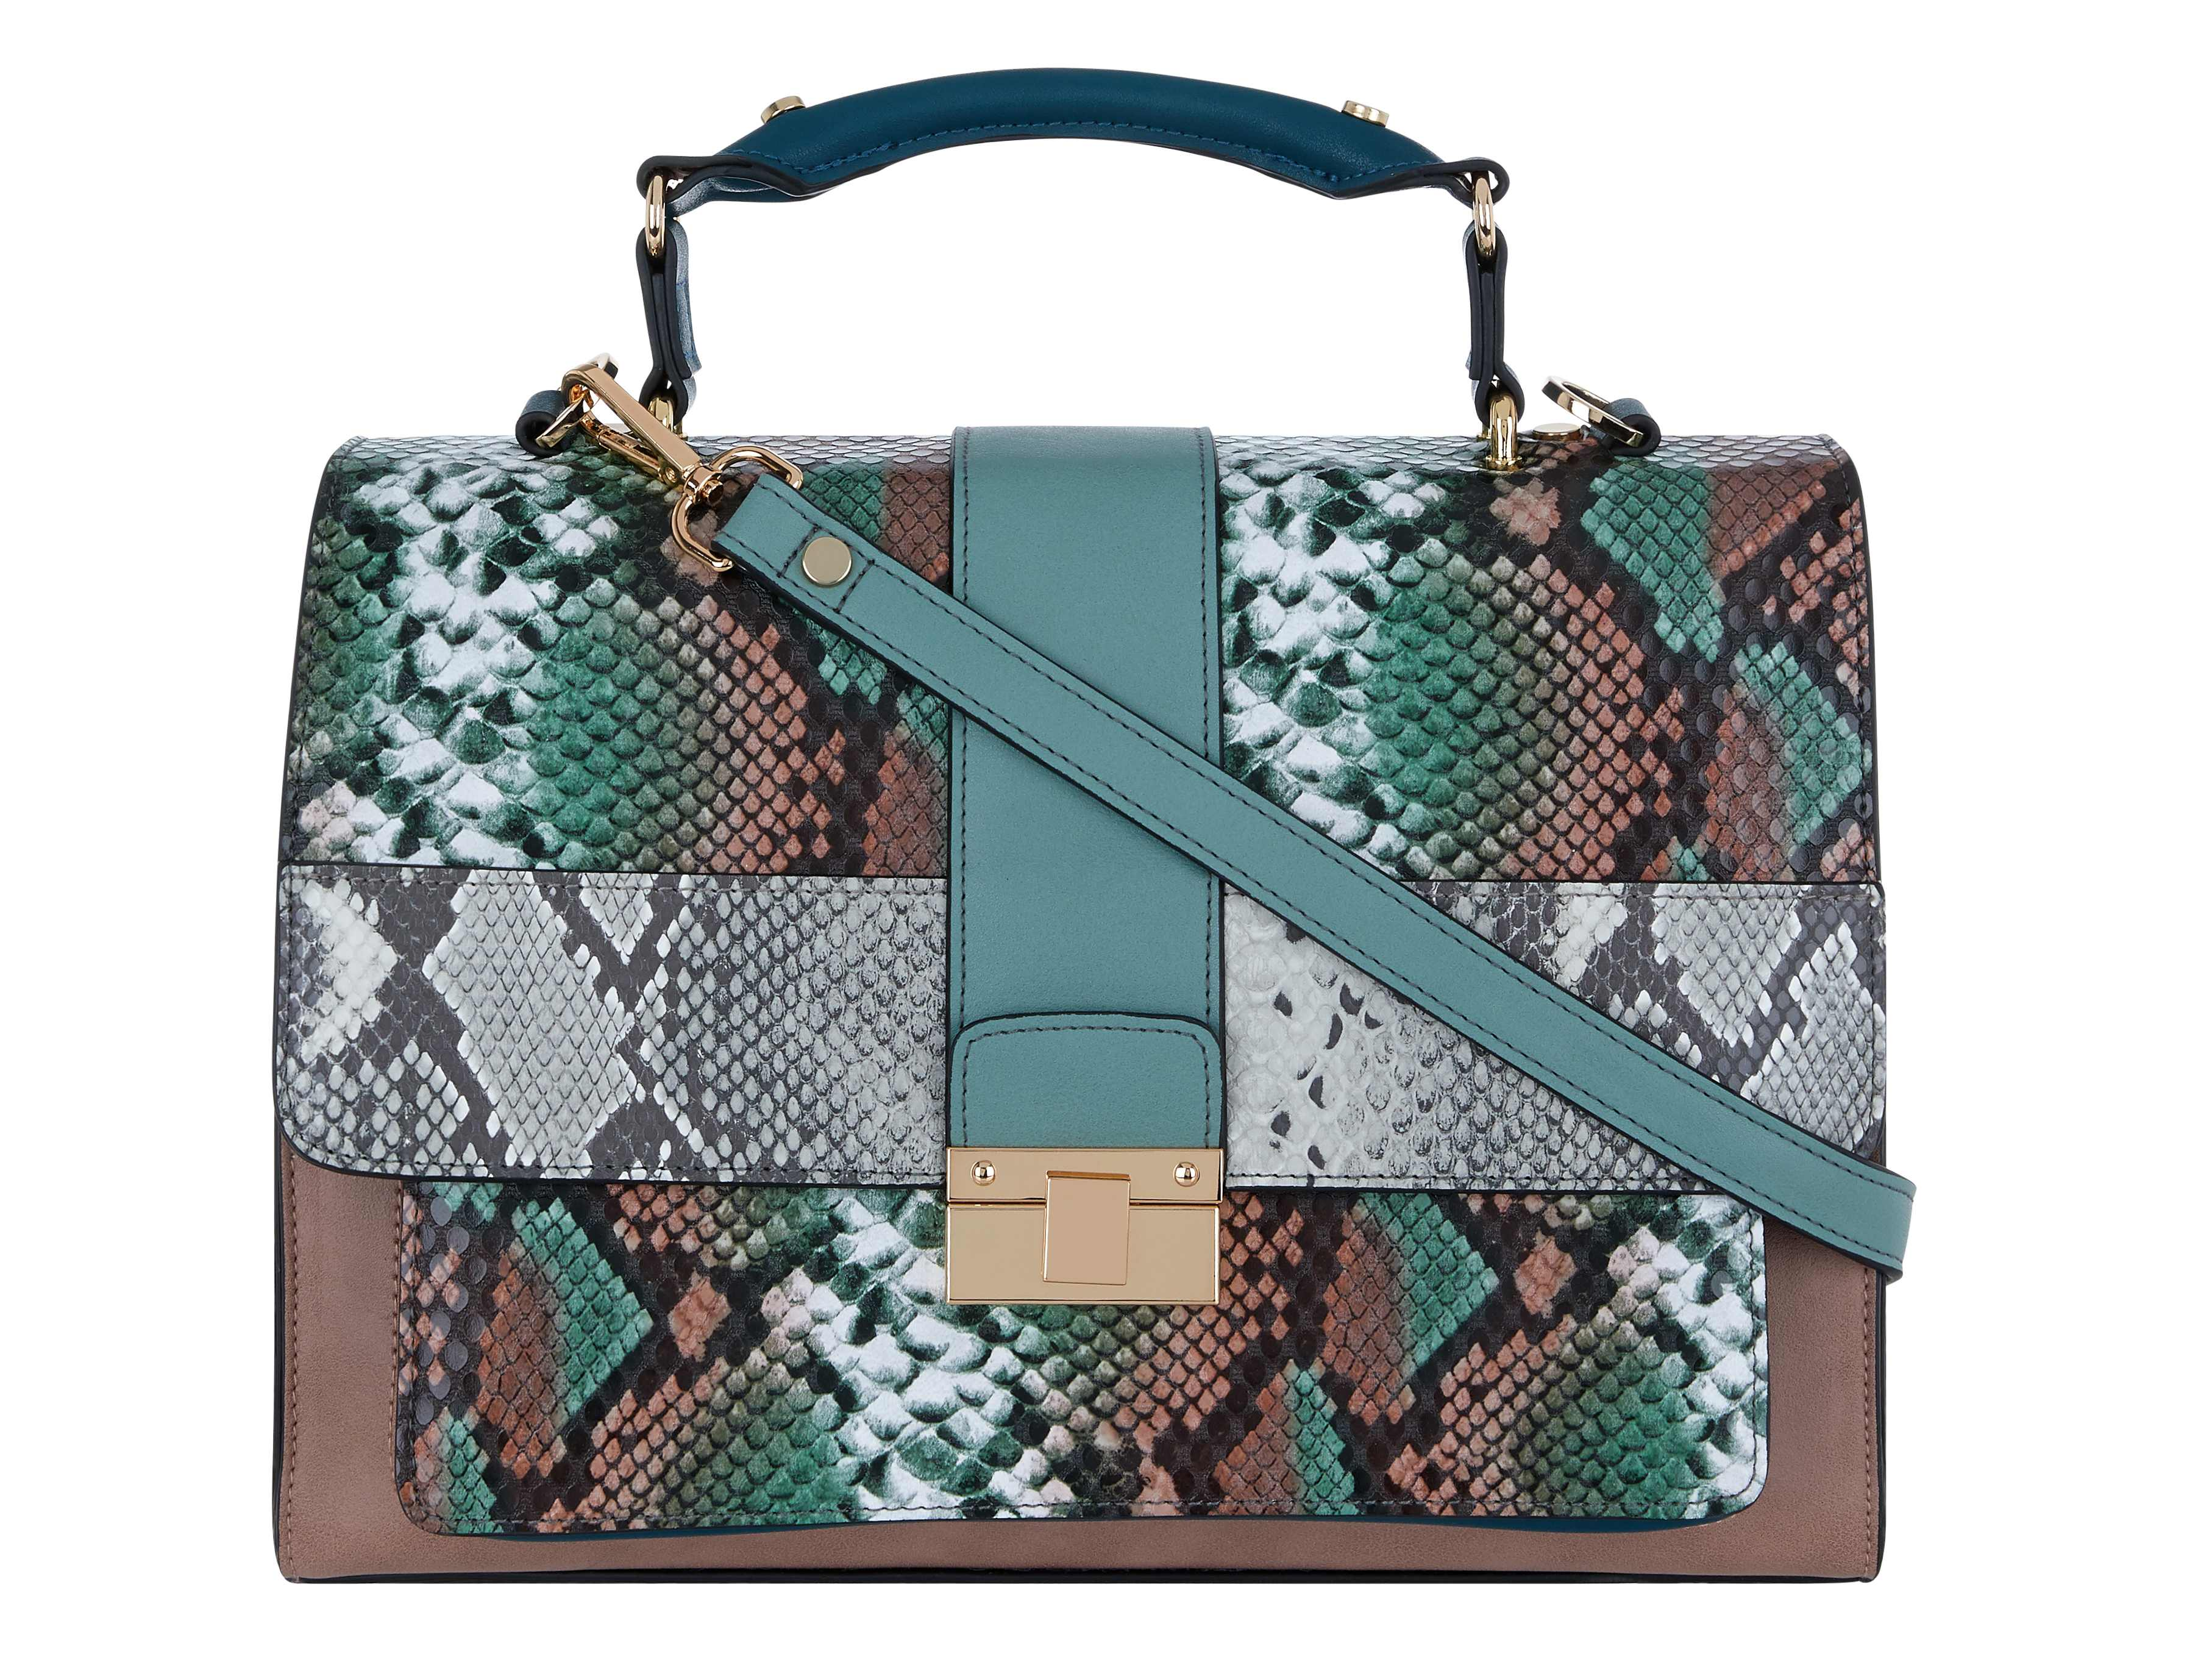 3. Accessorize Snake Handheld Bag, £40 (Accessorize/PA)